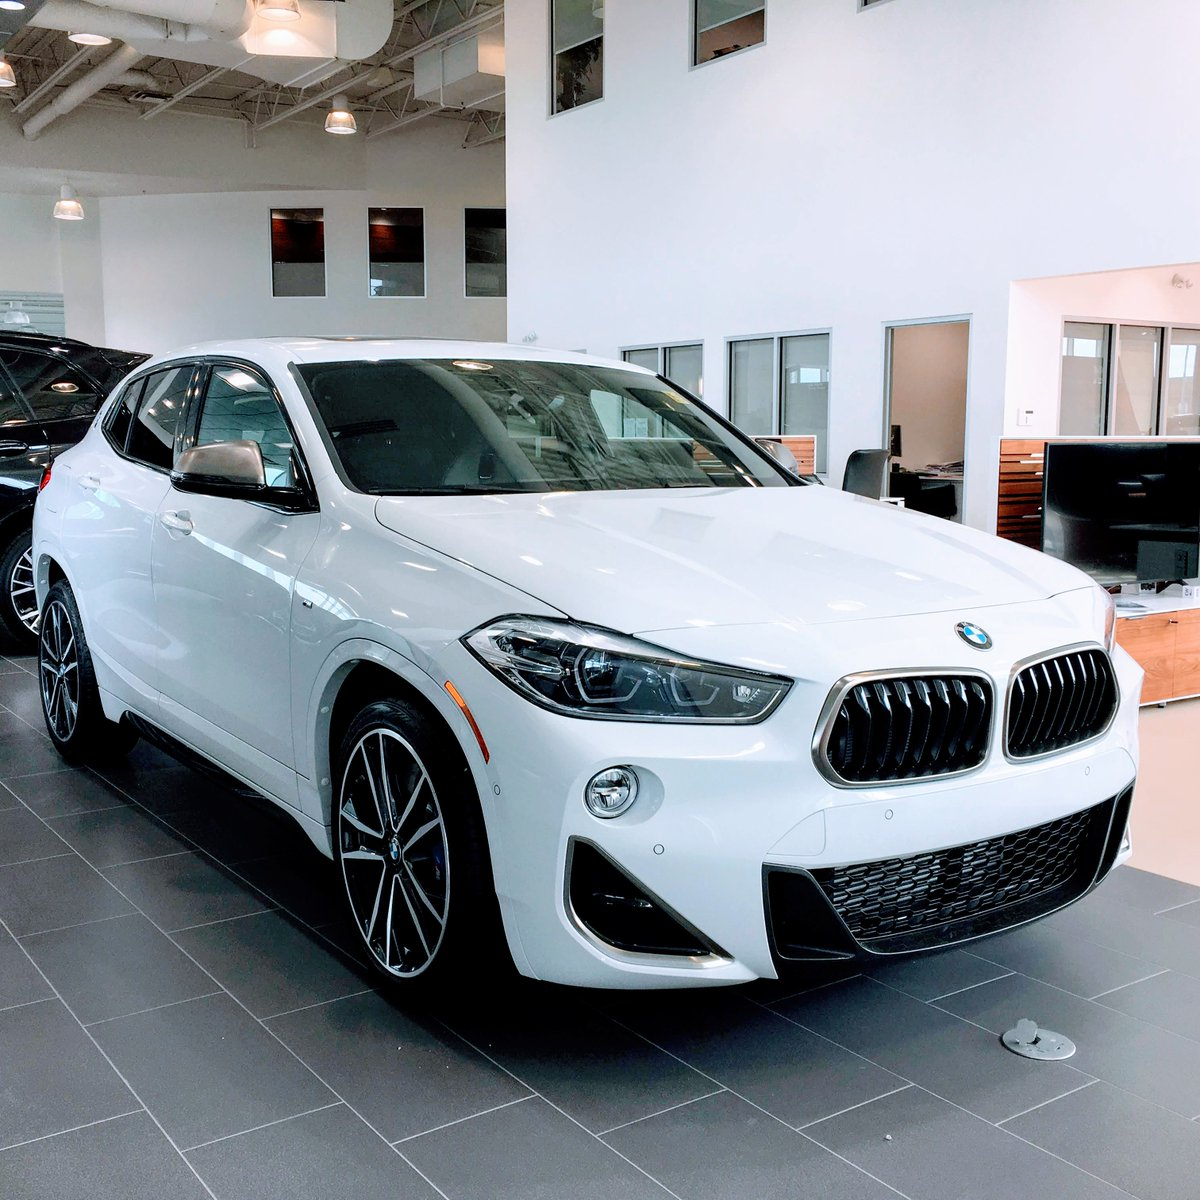 Leave the status quo behind in the BMW X2 M35i. Ask us about this unique crossover SUV. #yegBMW  http://EdmontonBMW.com   STK#0X26078 #BMWlife #bimmerlove #mtownpic.twitter.com/1WJVhR9JYh